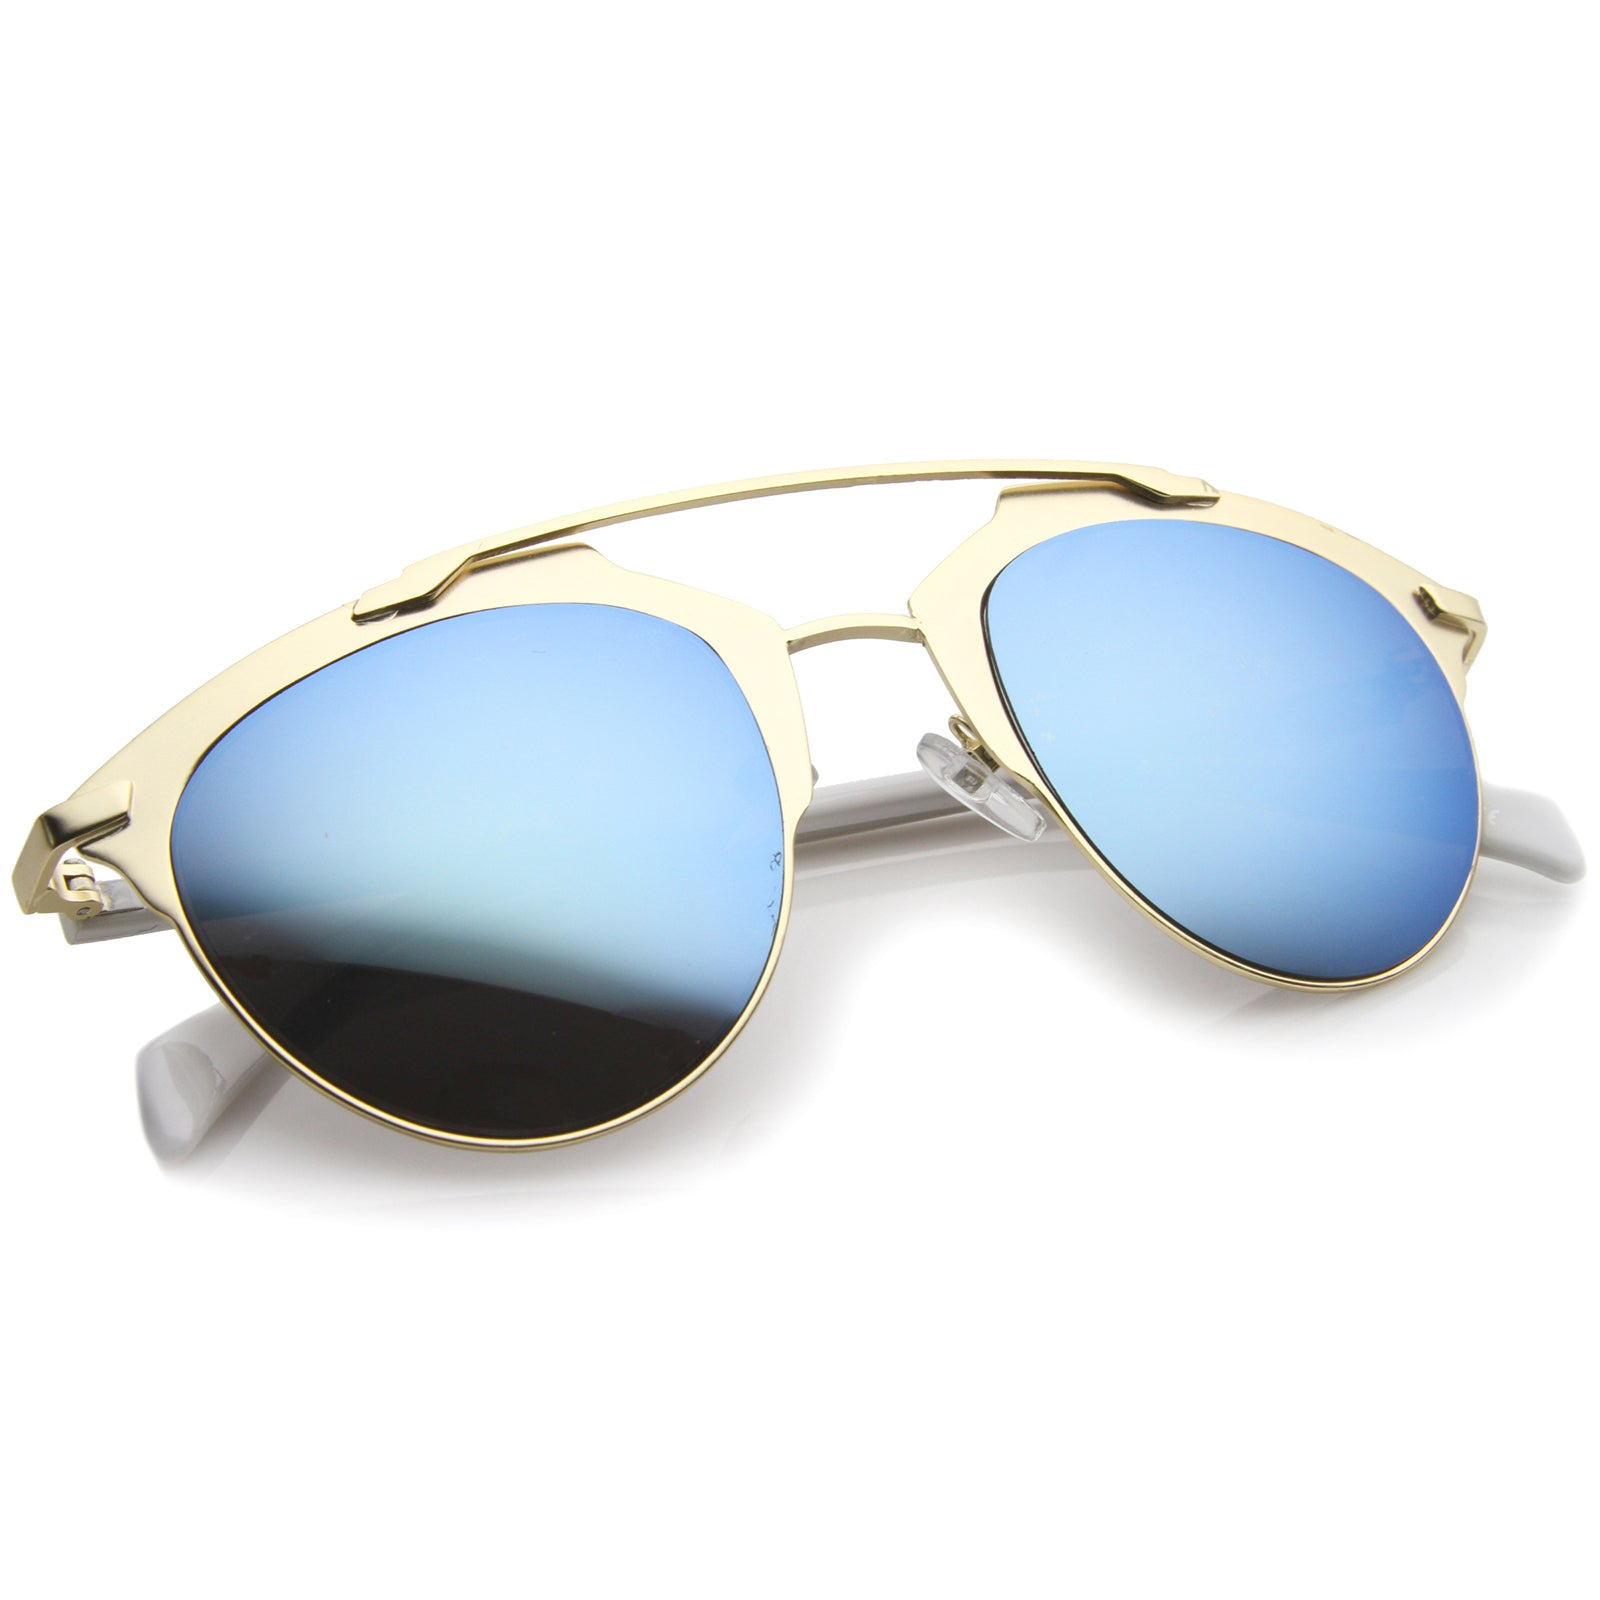 Modern Fashion Metal Double Bridge Mirror Lens Pantos Aviator Sunglasses 50mm - sunglass.la - 4